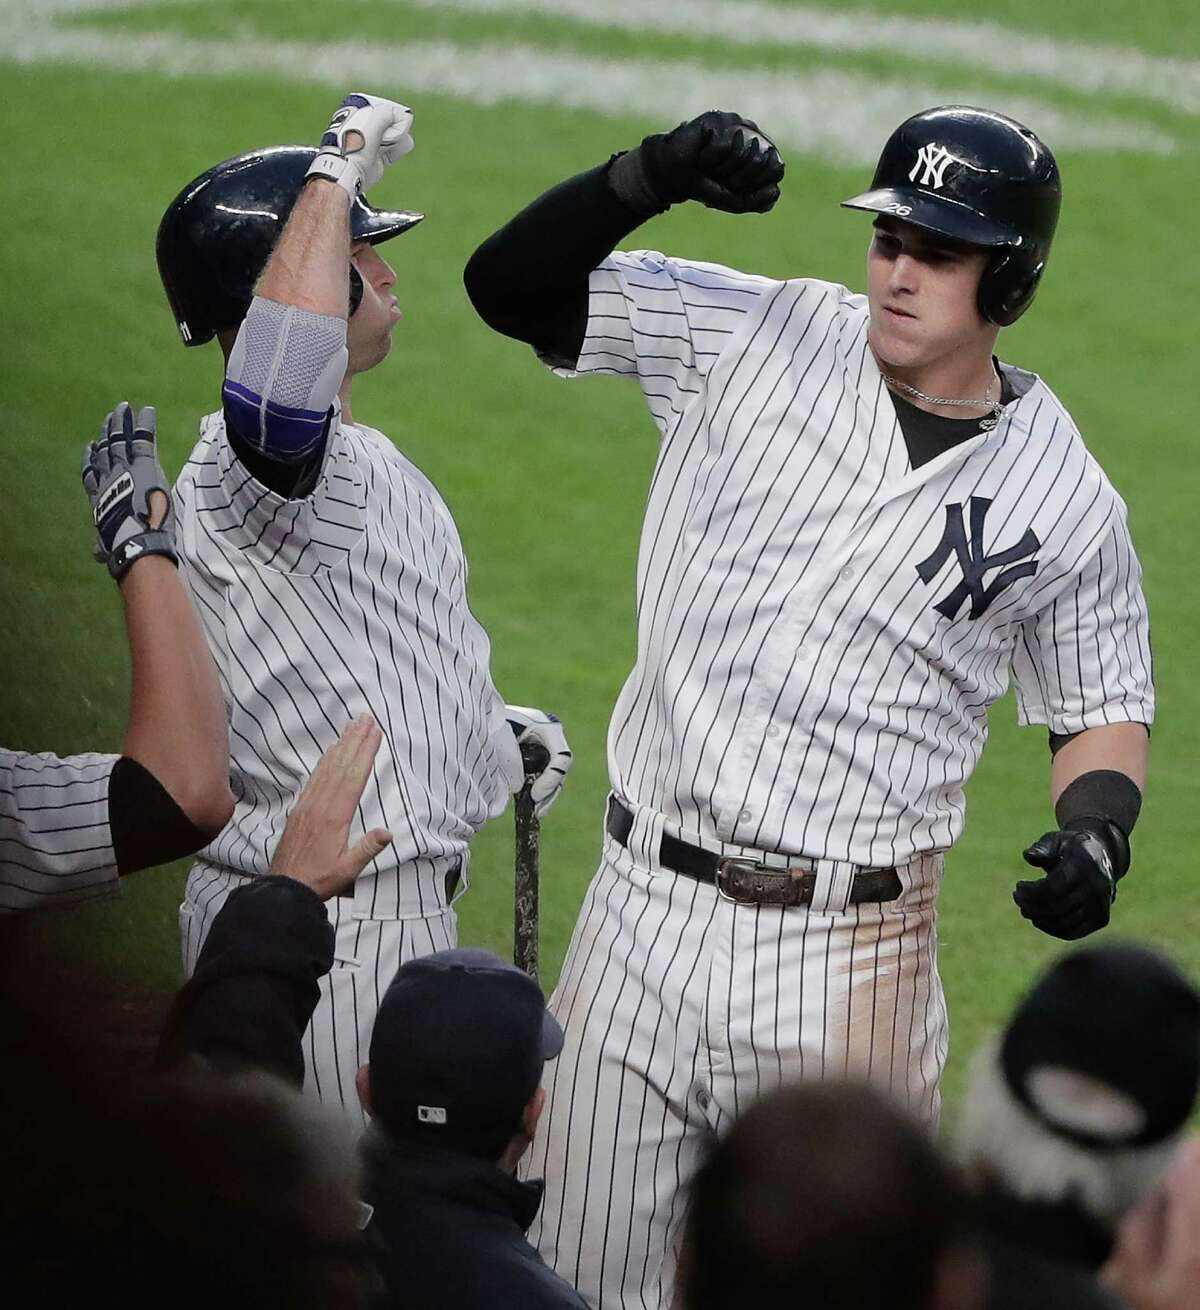 New York Yankees' Tyler Austin, right, celebrates with Mark Teixeira after hitting a solo home run against the Baltimore Orioles during the seventh inning of a baseball game, Saturday, Oct. 1, 2016, in New York. The Yankees won 7-3. (AP Photo/Julie Jacobson) ORG XMIT: NYJJ114